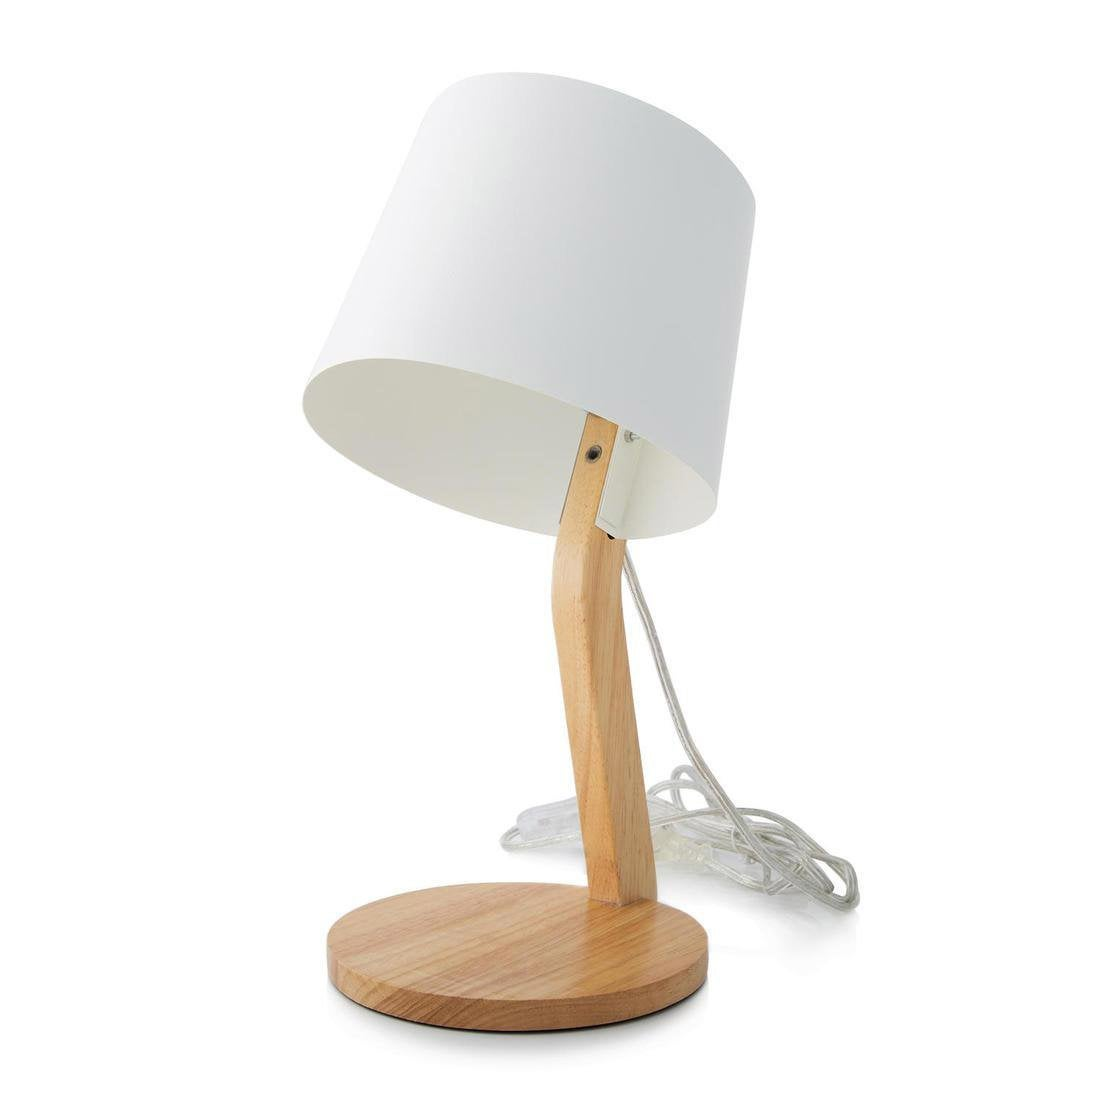 Lampe, design, bois blanc et bois, MARBELLA LIGHTING Woody